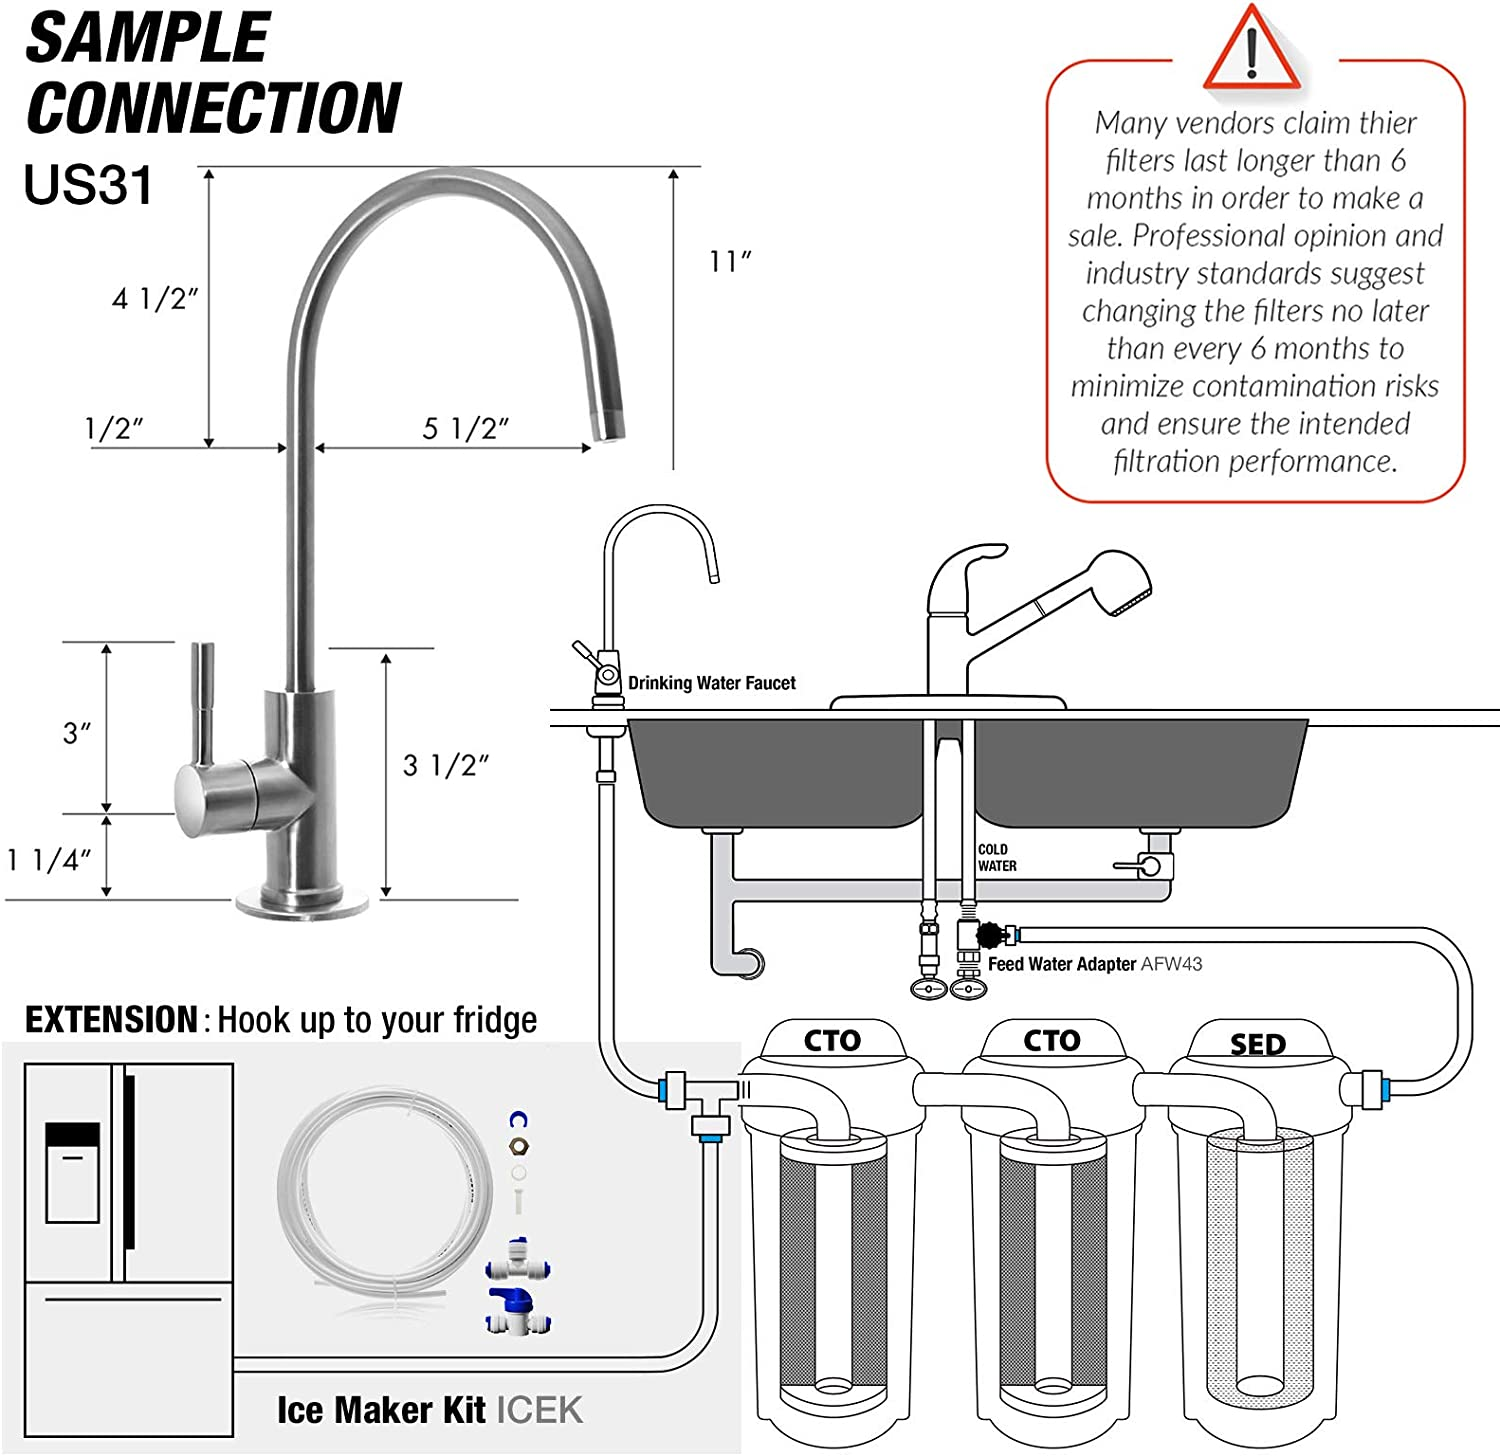 iSpring US31 Under Sink Water Filter